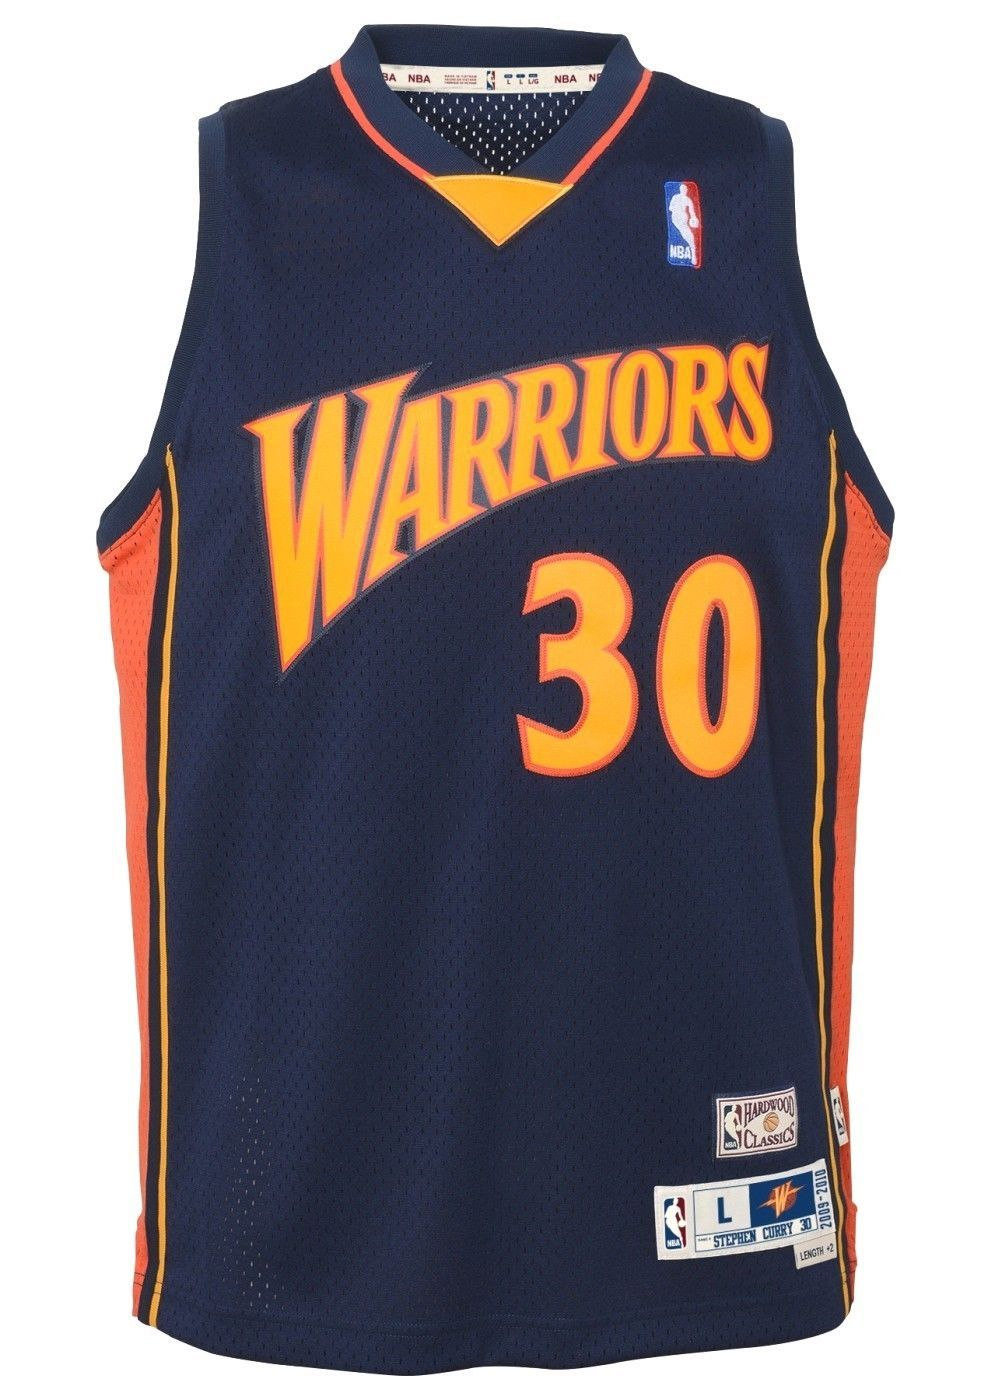 the best attitude 6e507 f6d36 Stephen Curry Golden State Warriors NBA Youth Throwback 2009 ...